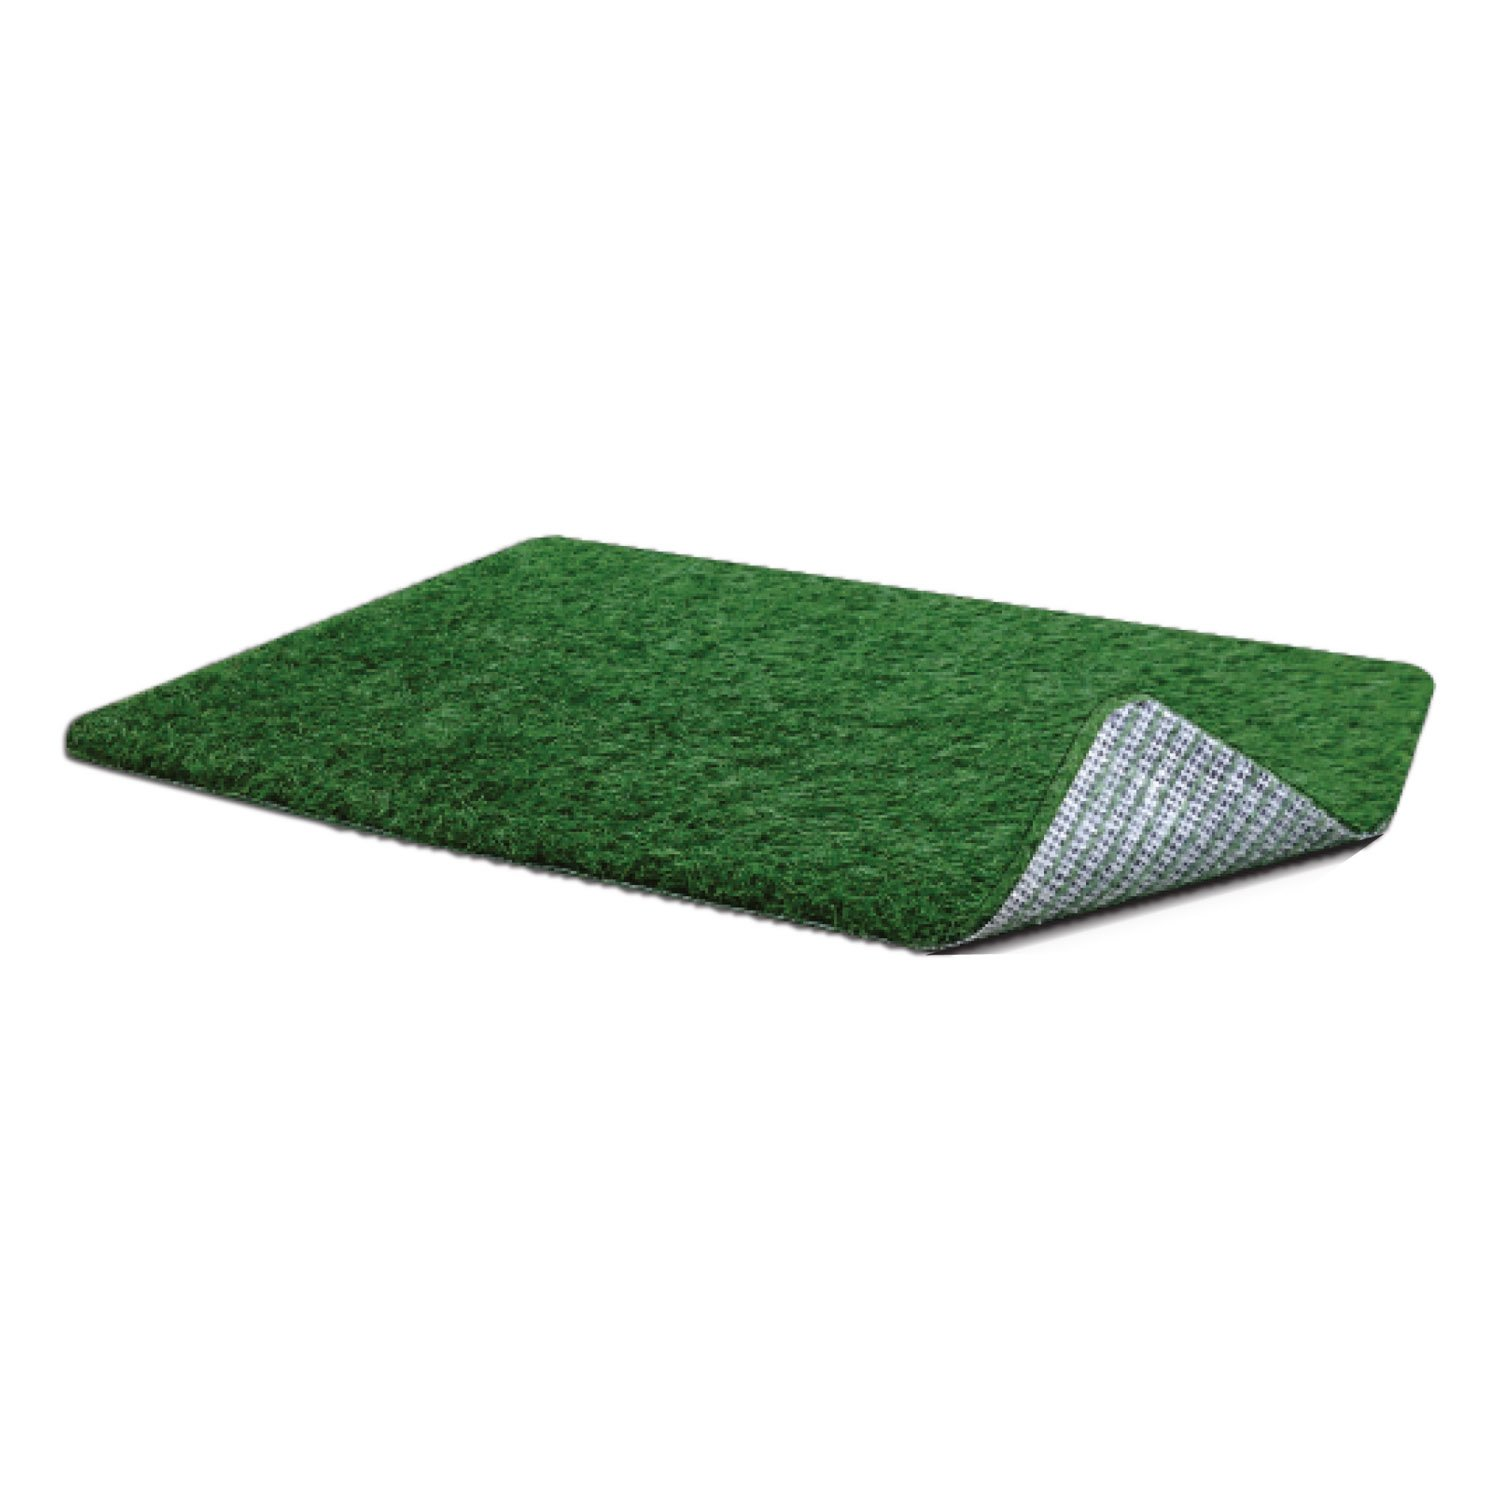 PoochPads Indoor Dog Potty Replacement Grass